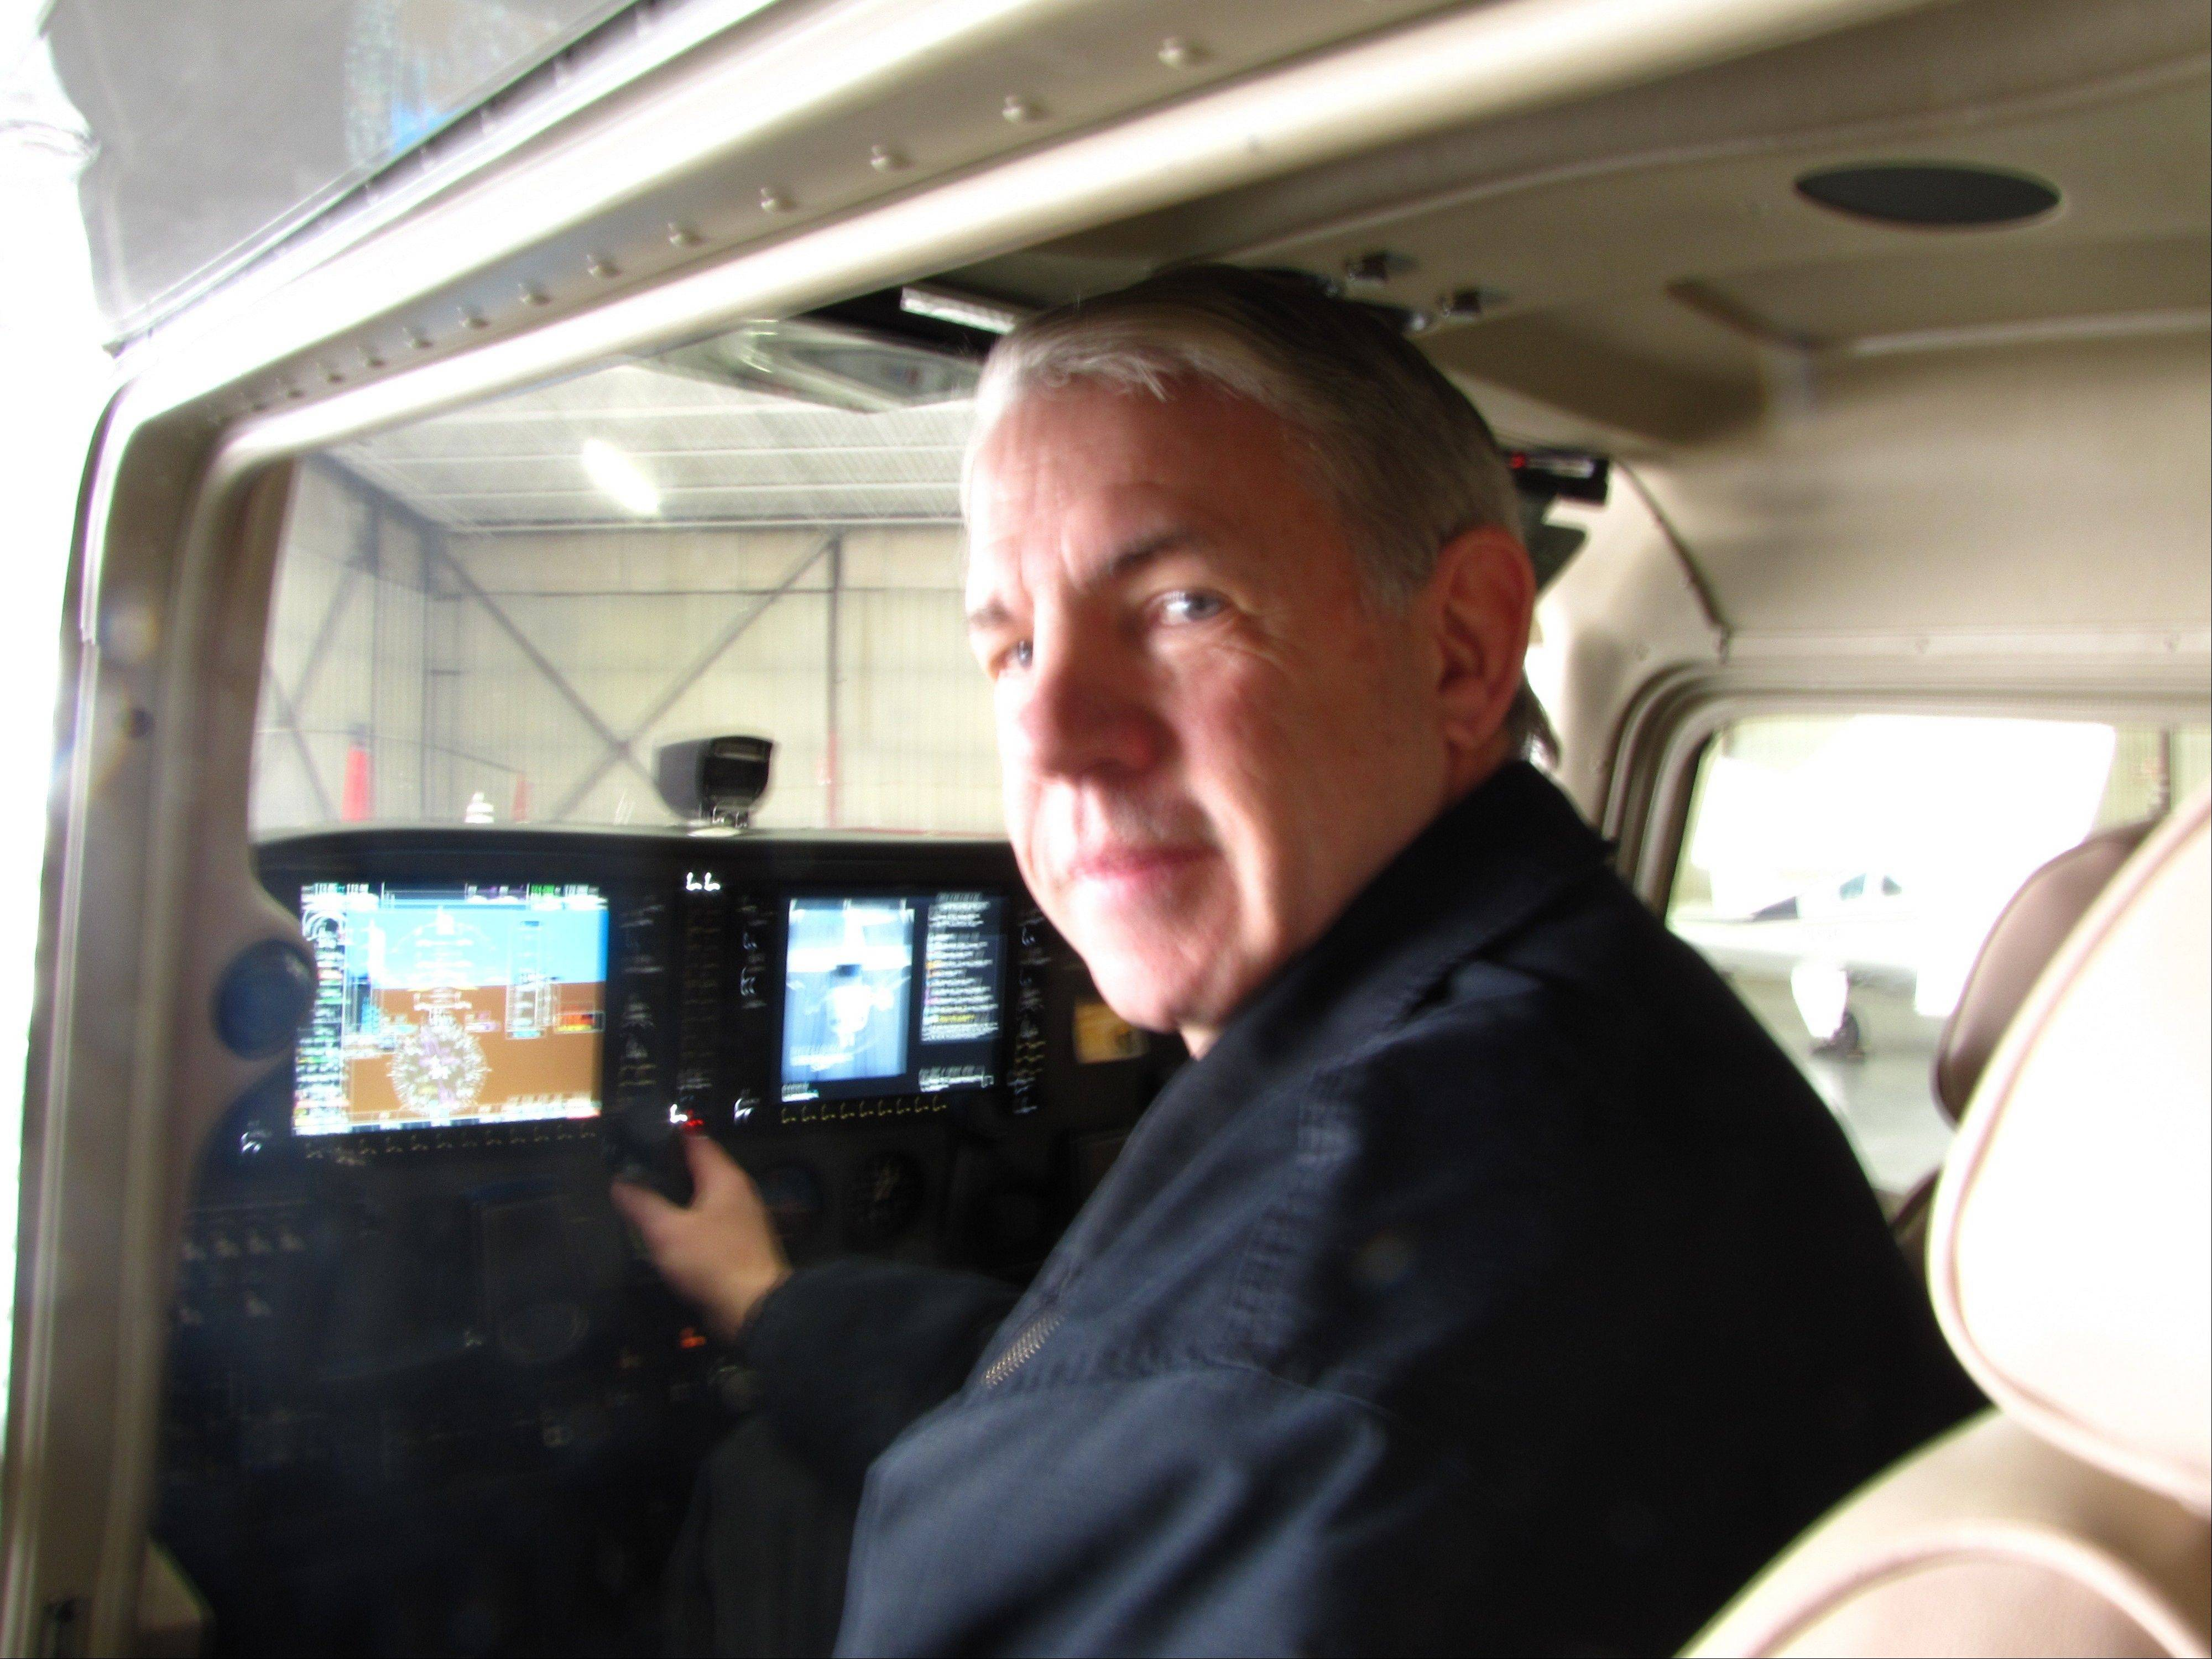 When Tom Peterson of Arlington Heights had more time after his retirement, he decided to take flying lessons with the goal of earning his private pilot's license. He chose Windy City Flyers at the Chicago Executive Airport in Wheeling for his lessons.